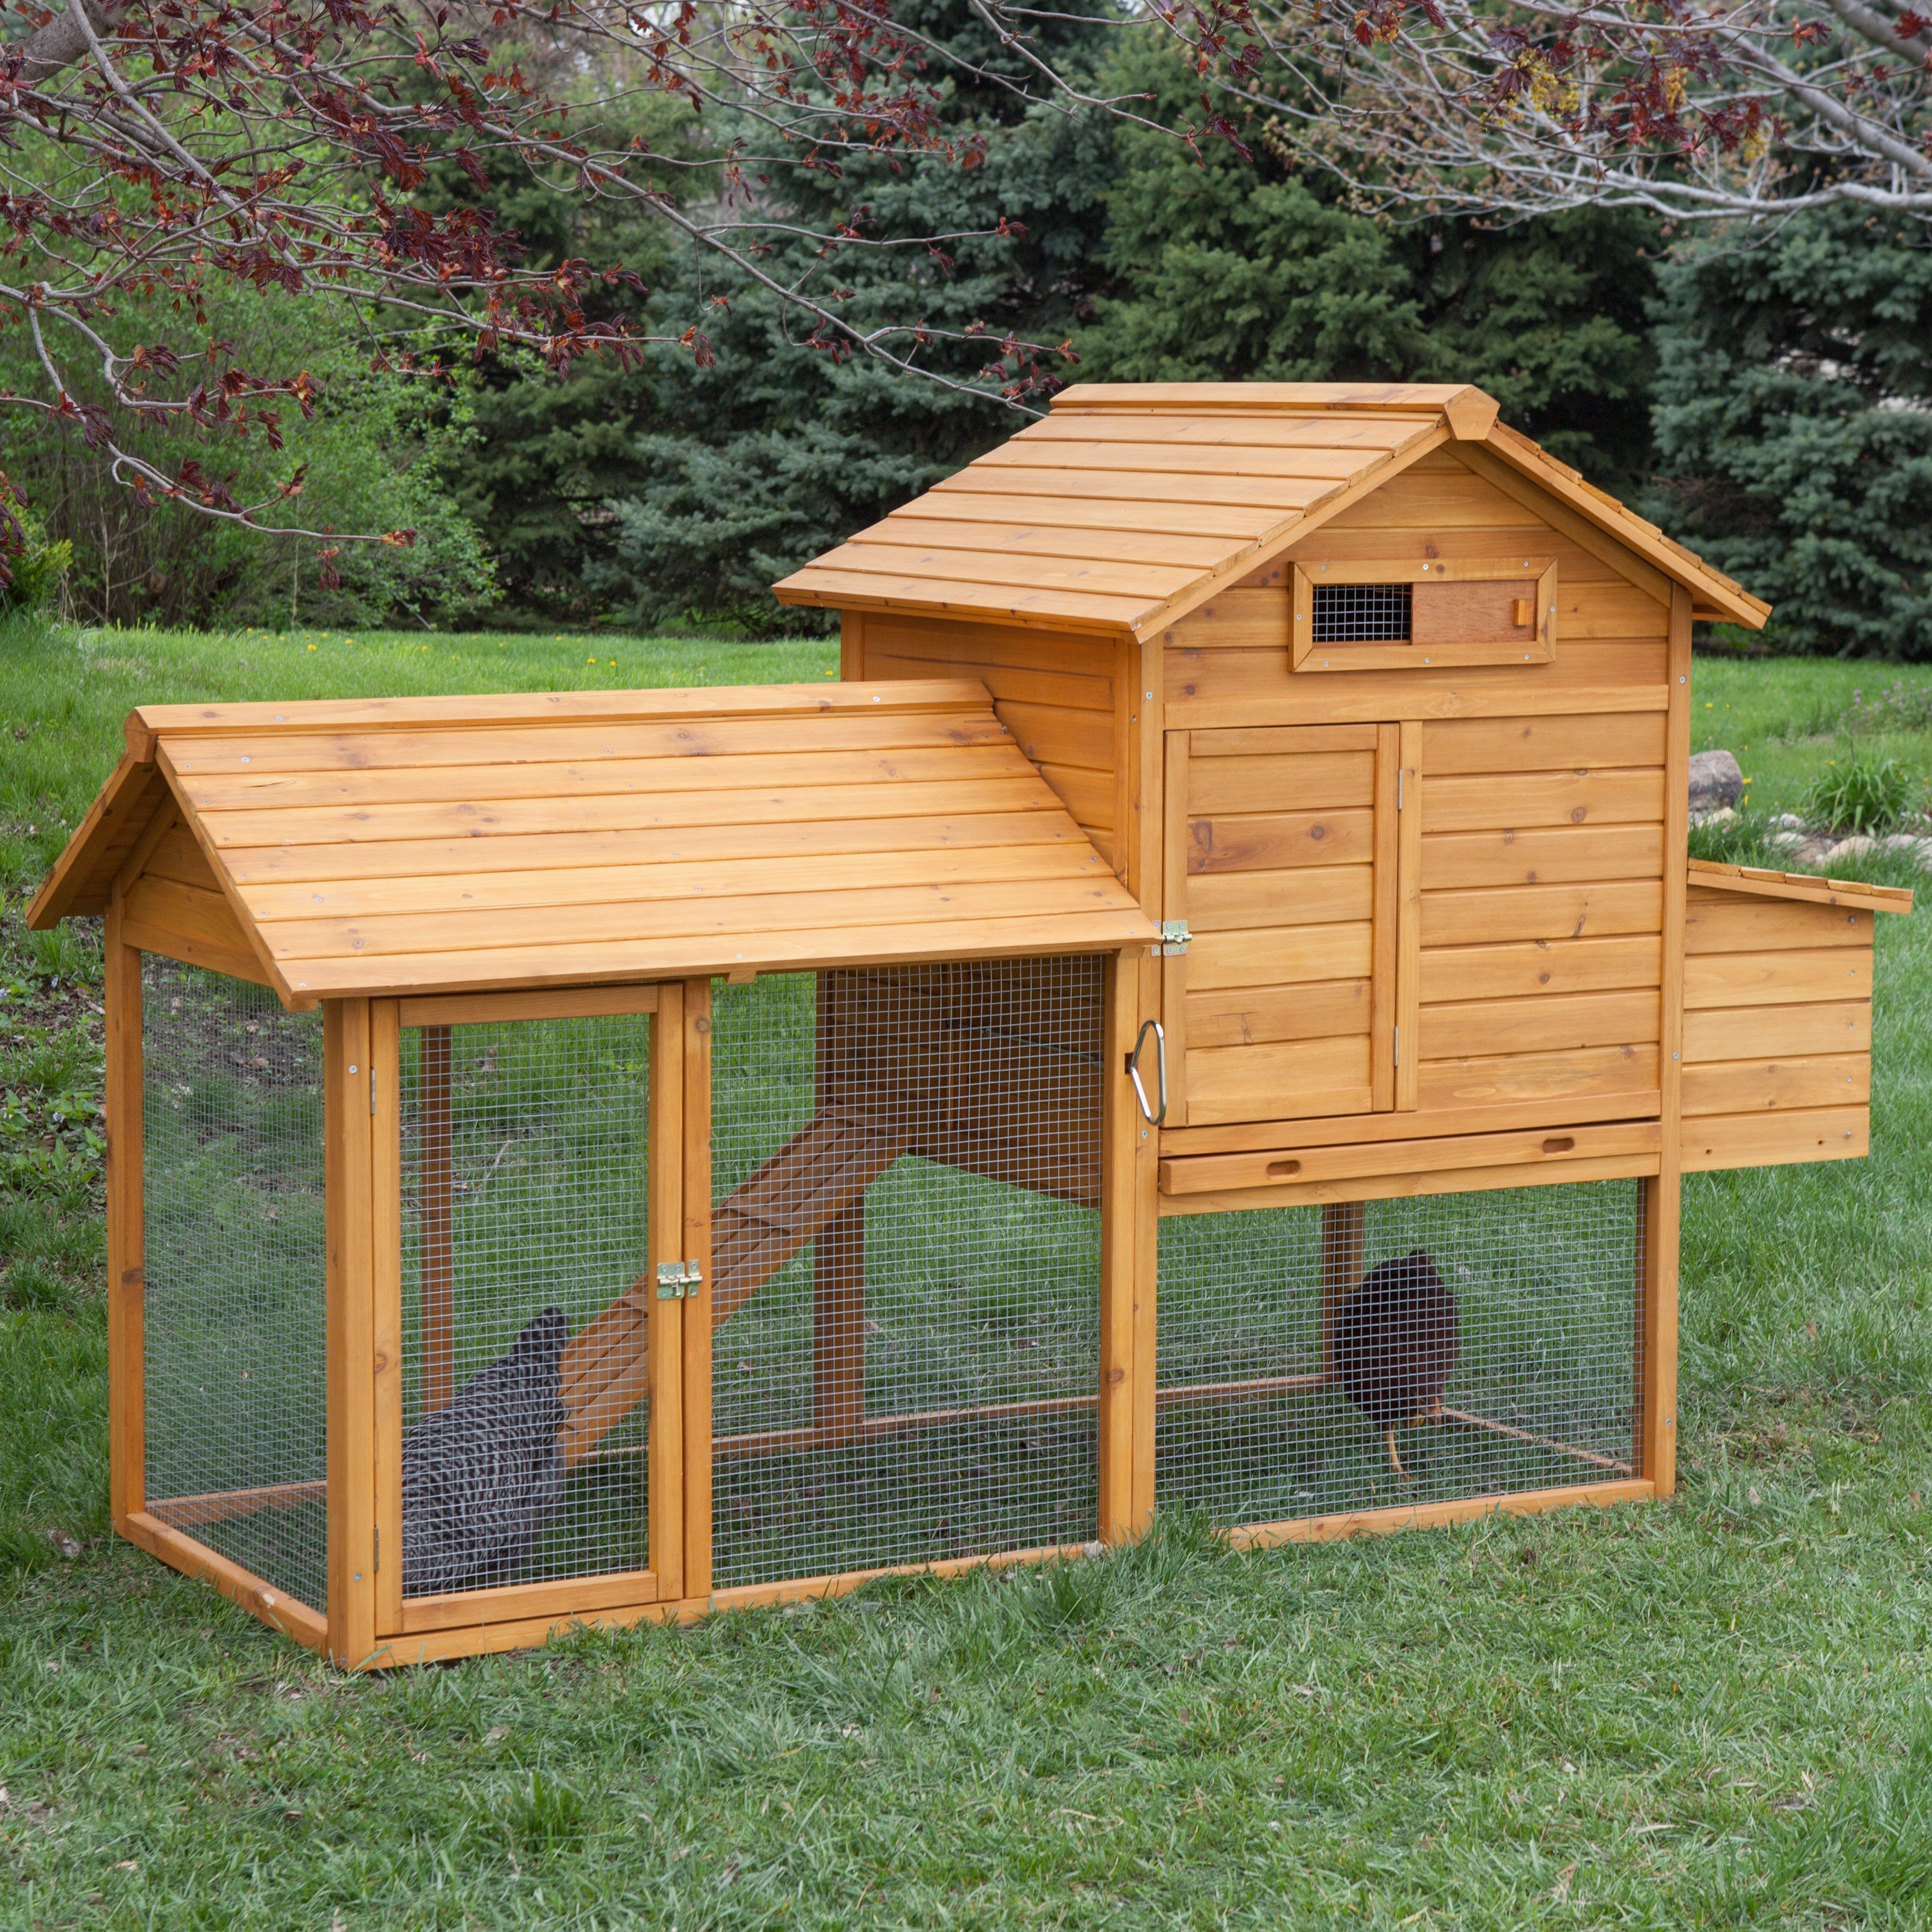 Boomer ; George Tree-Tops 4 Chicken Coop With Run